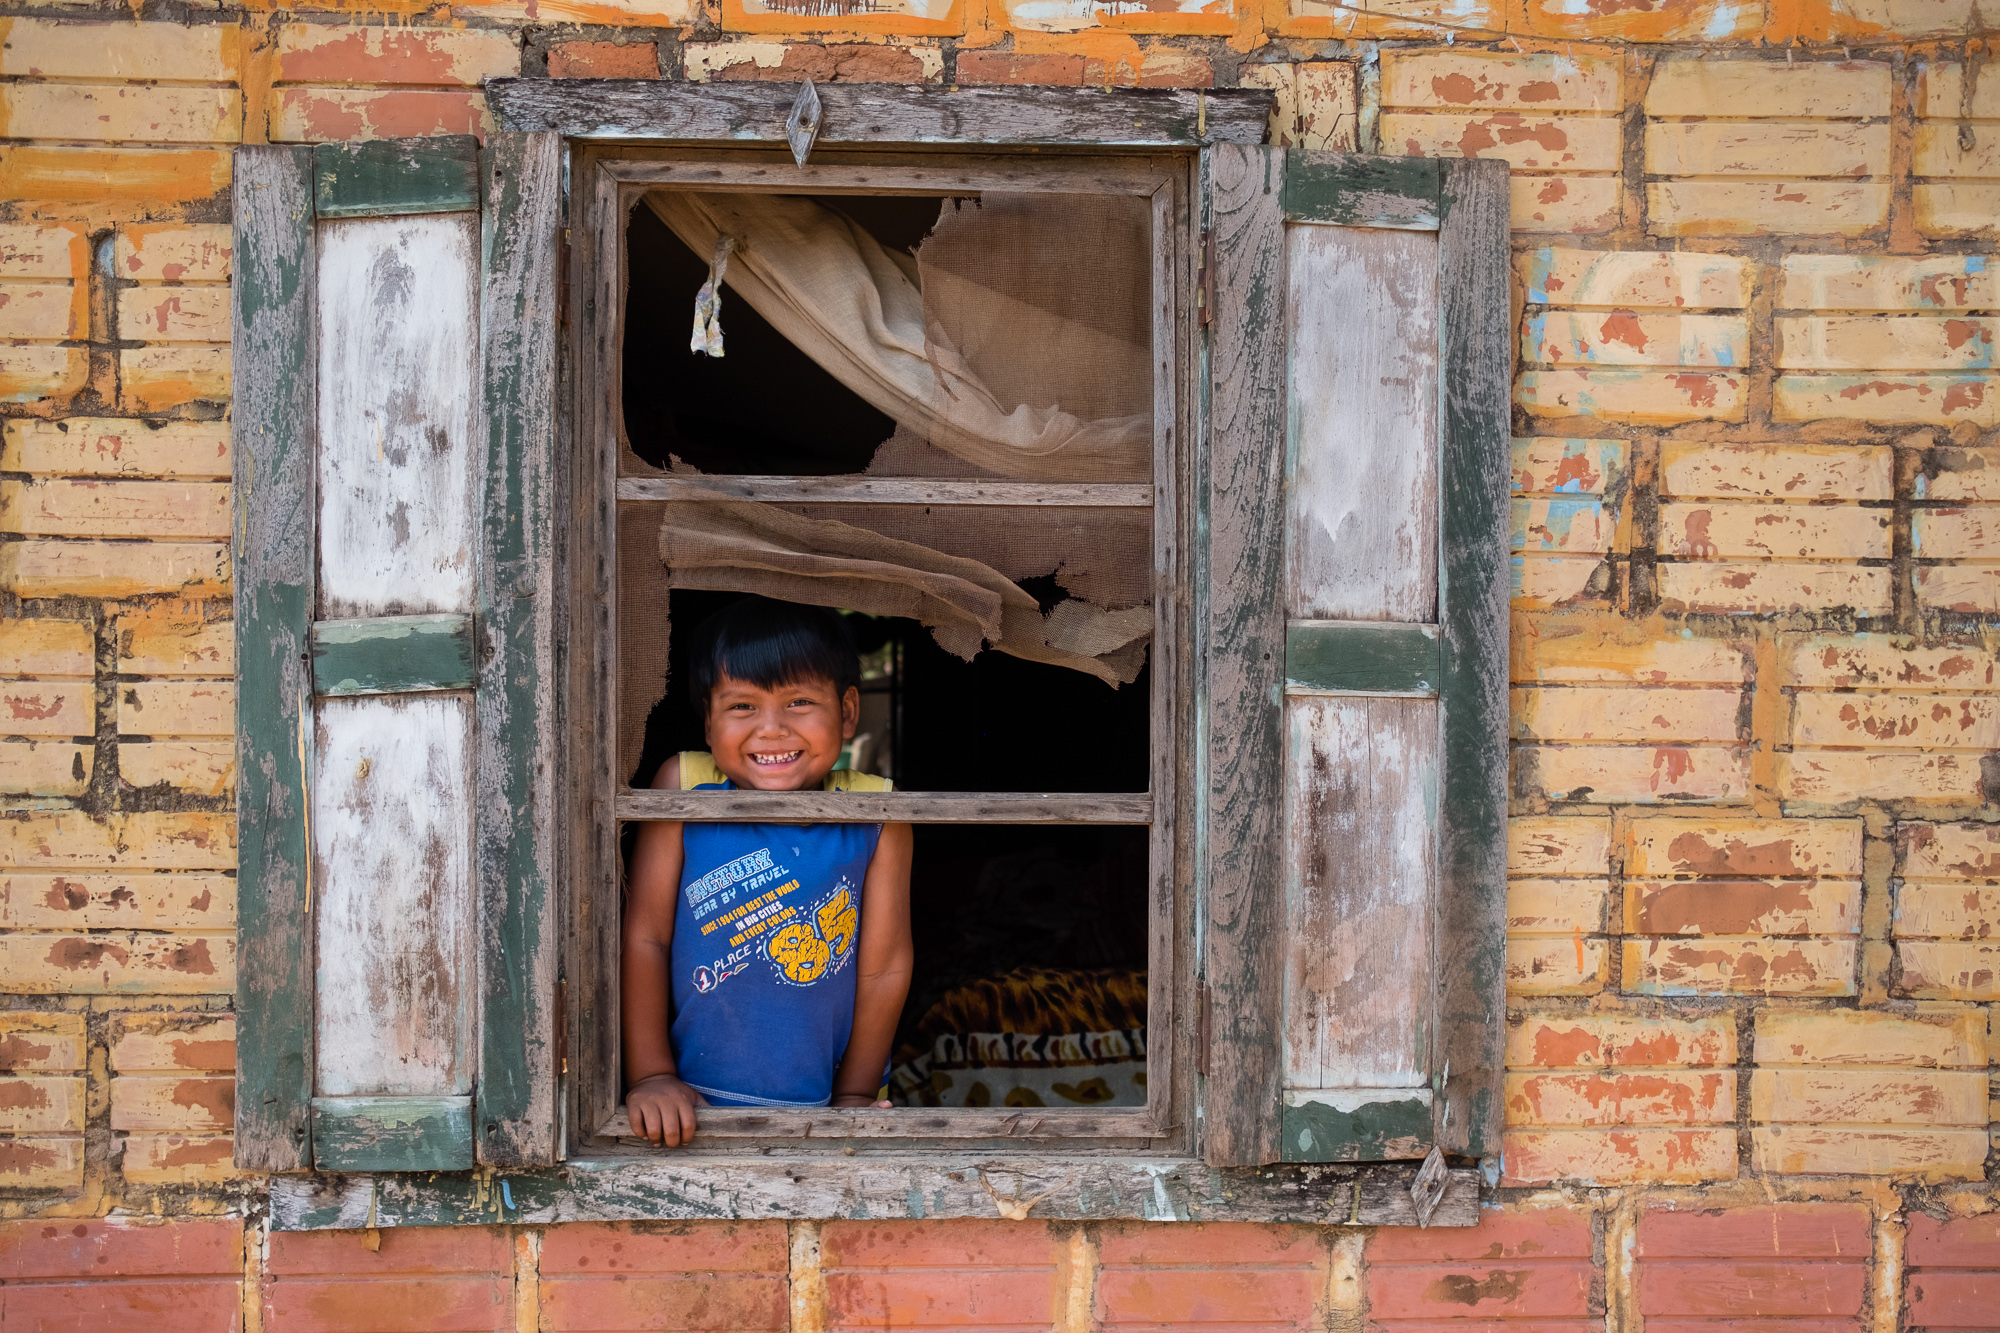 A little boy in the window of his home. El Chaco, Paraguay.